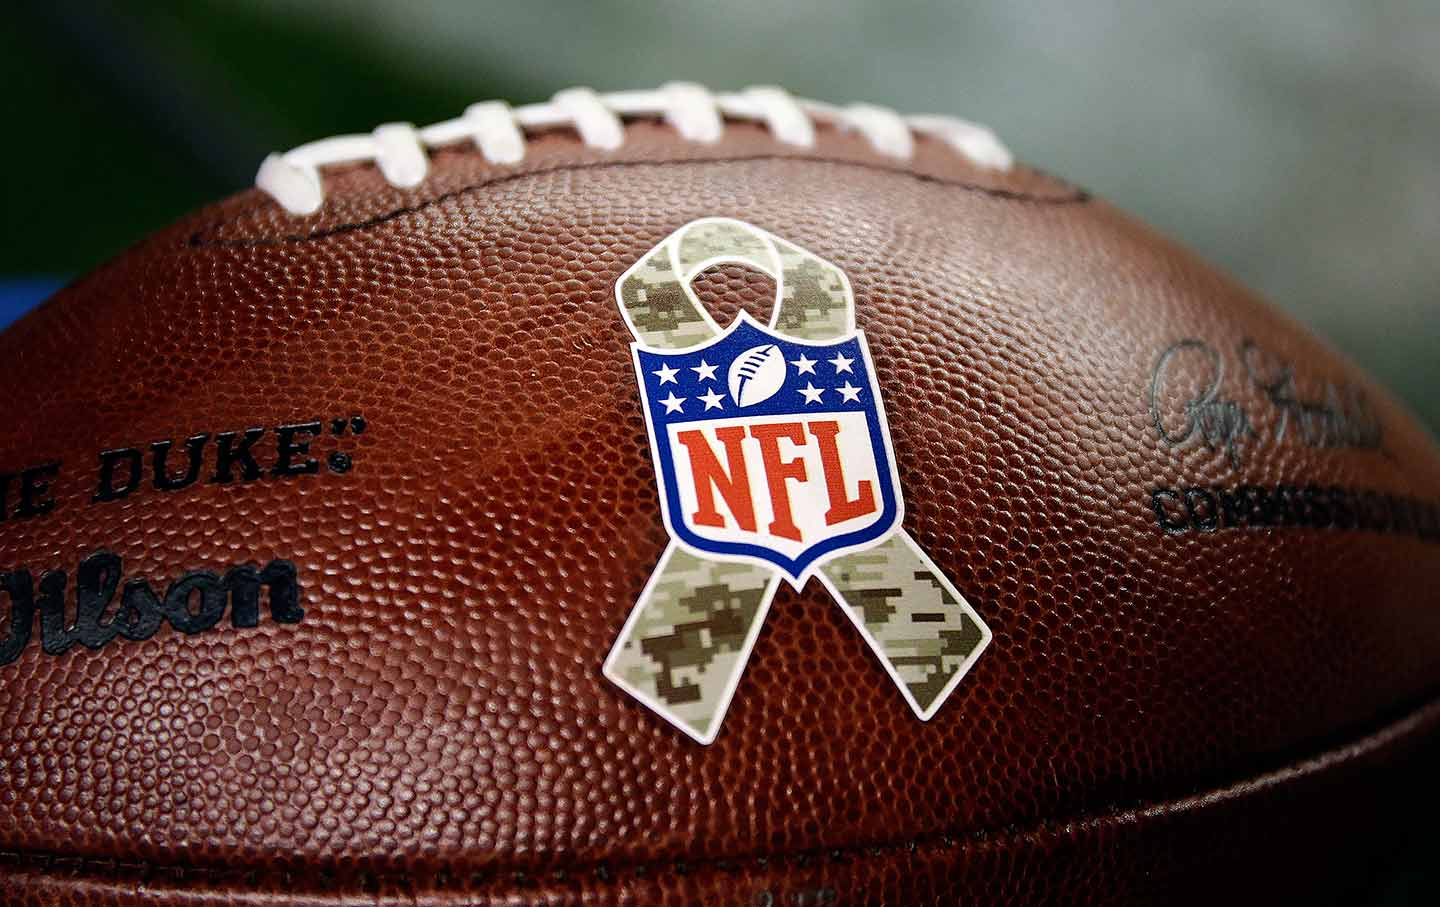 88834278dd8 The NFL Salute to Service logo is seen on a football during an NFL football  game on November 12, 2017. (AP Photo / Jack Dempsey)